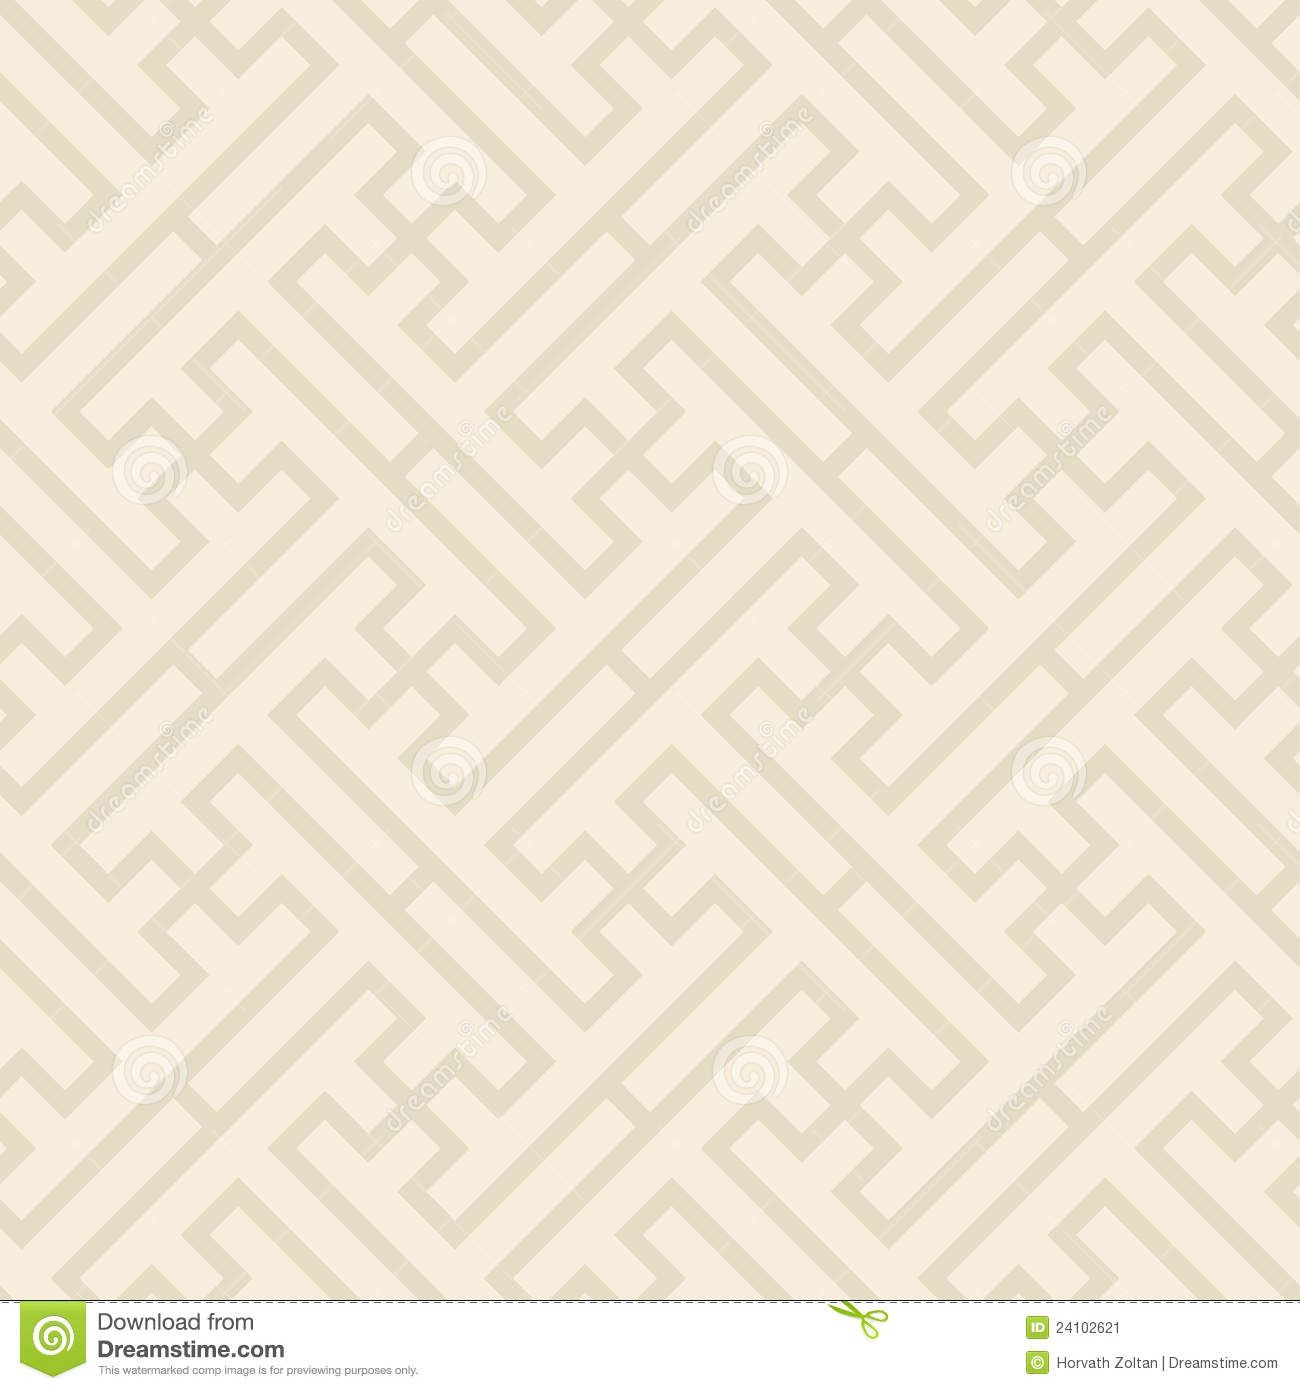 Traditional Vietnamese Seamless Pattern - Download From Over 42 Million High Quality Stock Photos, Images, Vectors. Sign up for FREE today. Image: 24102621